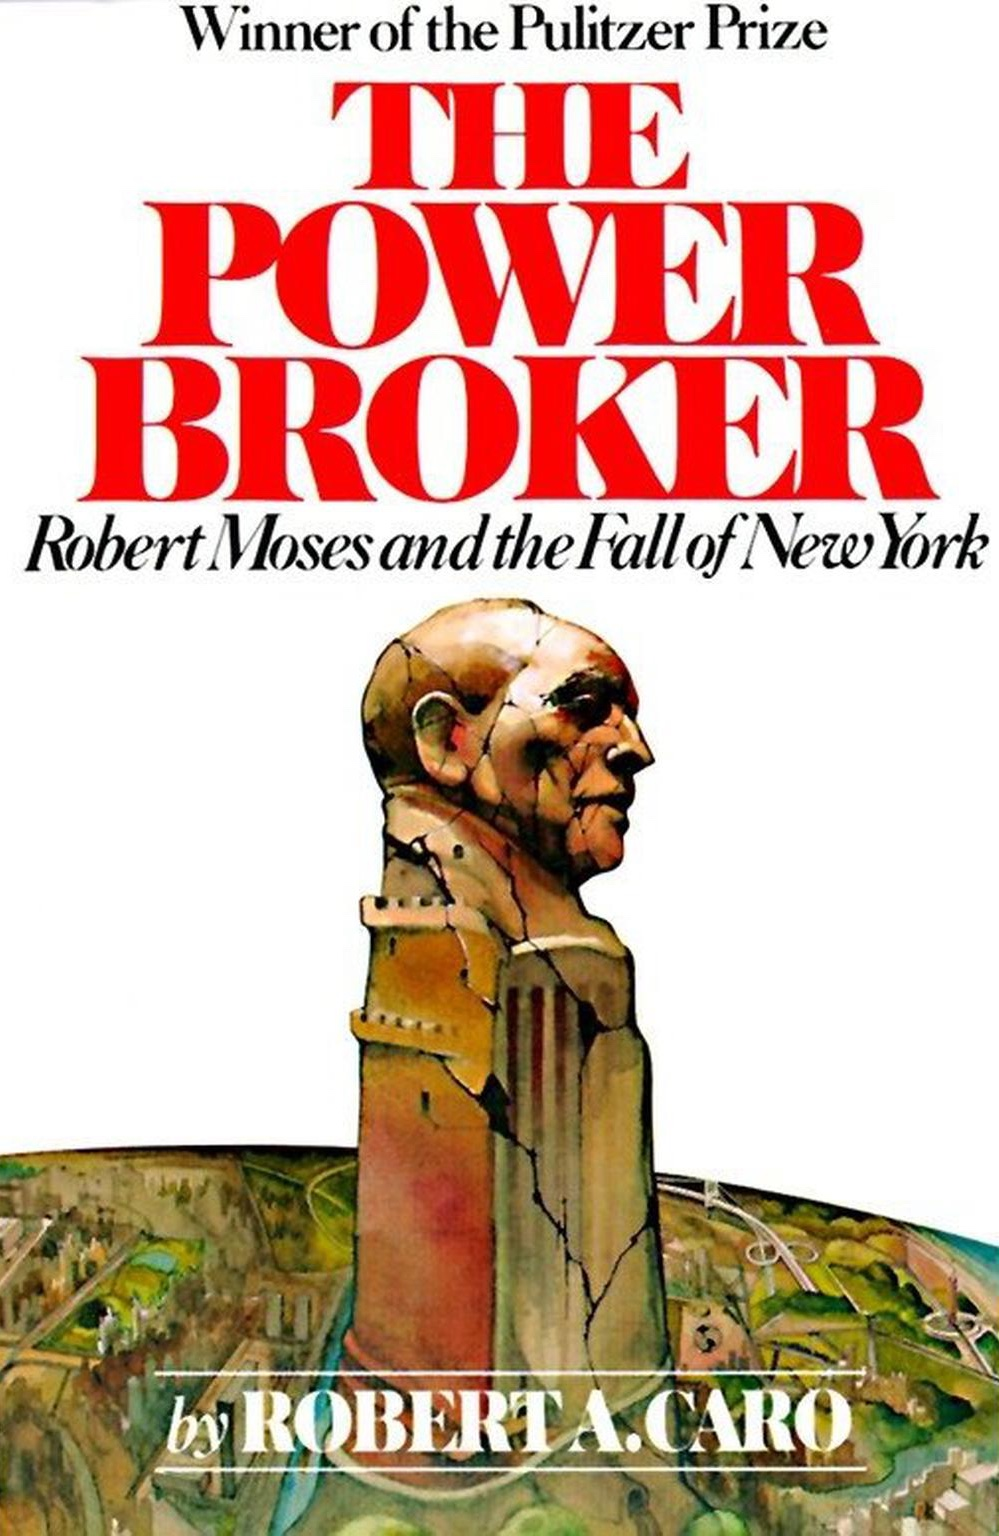 The cover of The Power Broker.